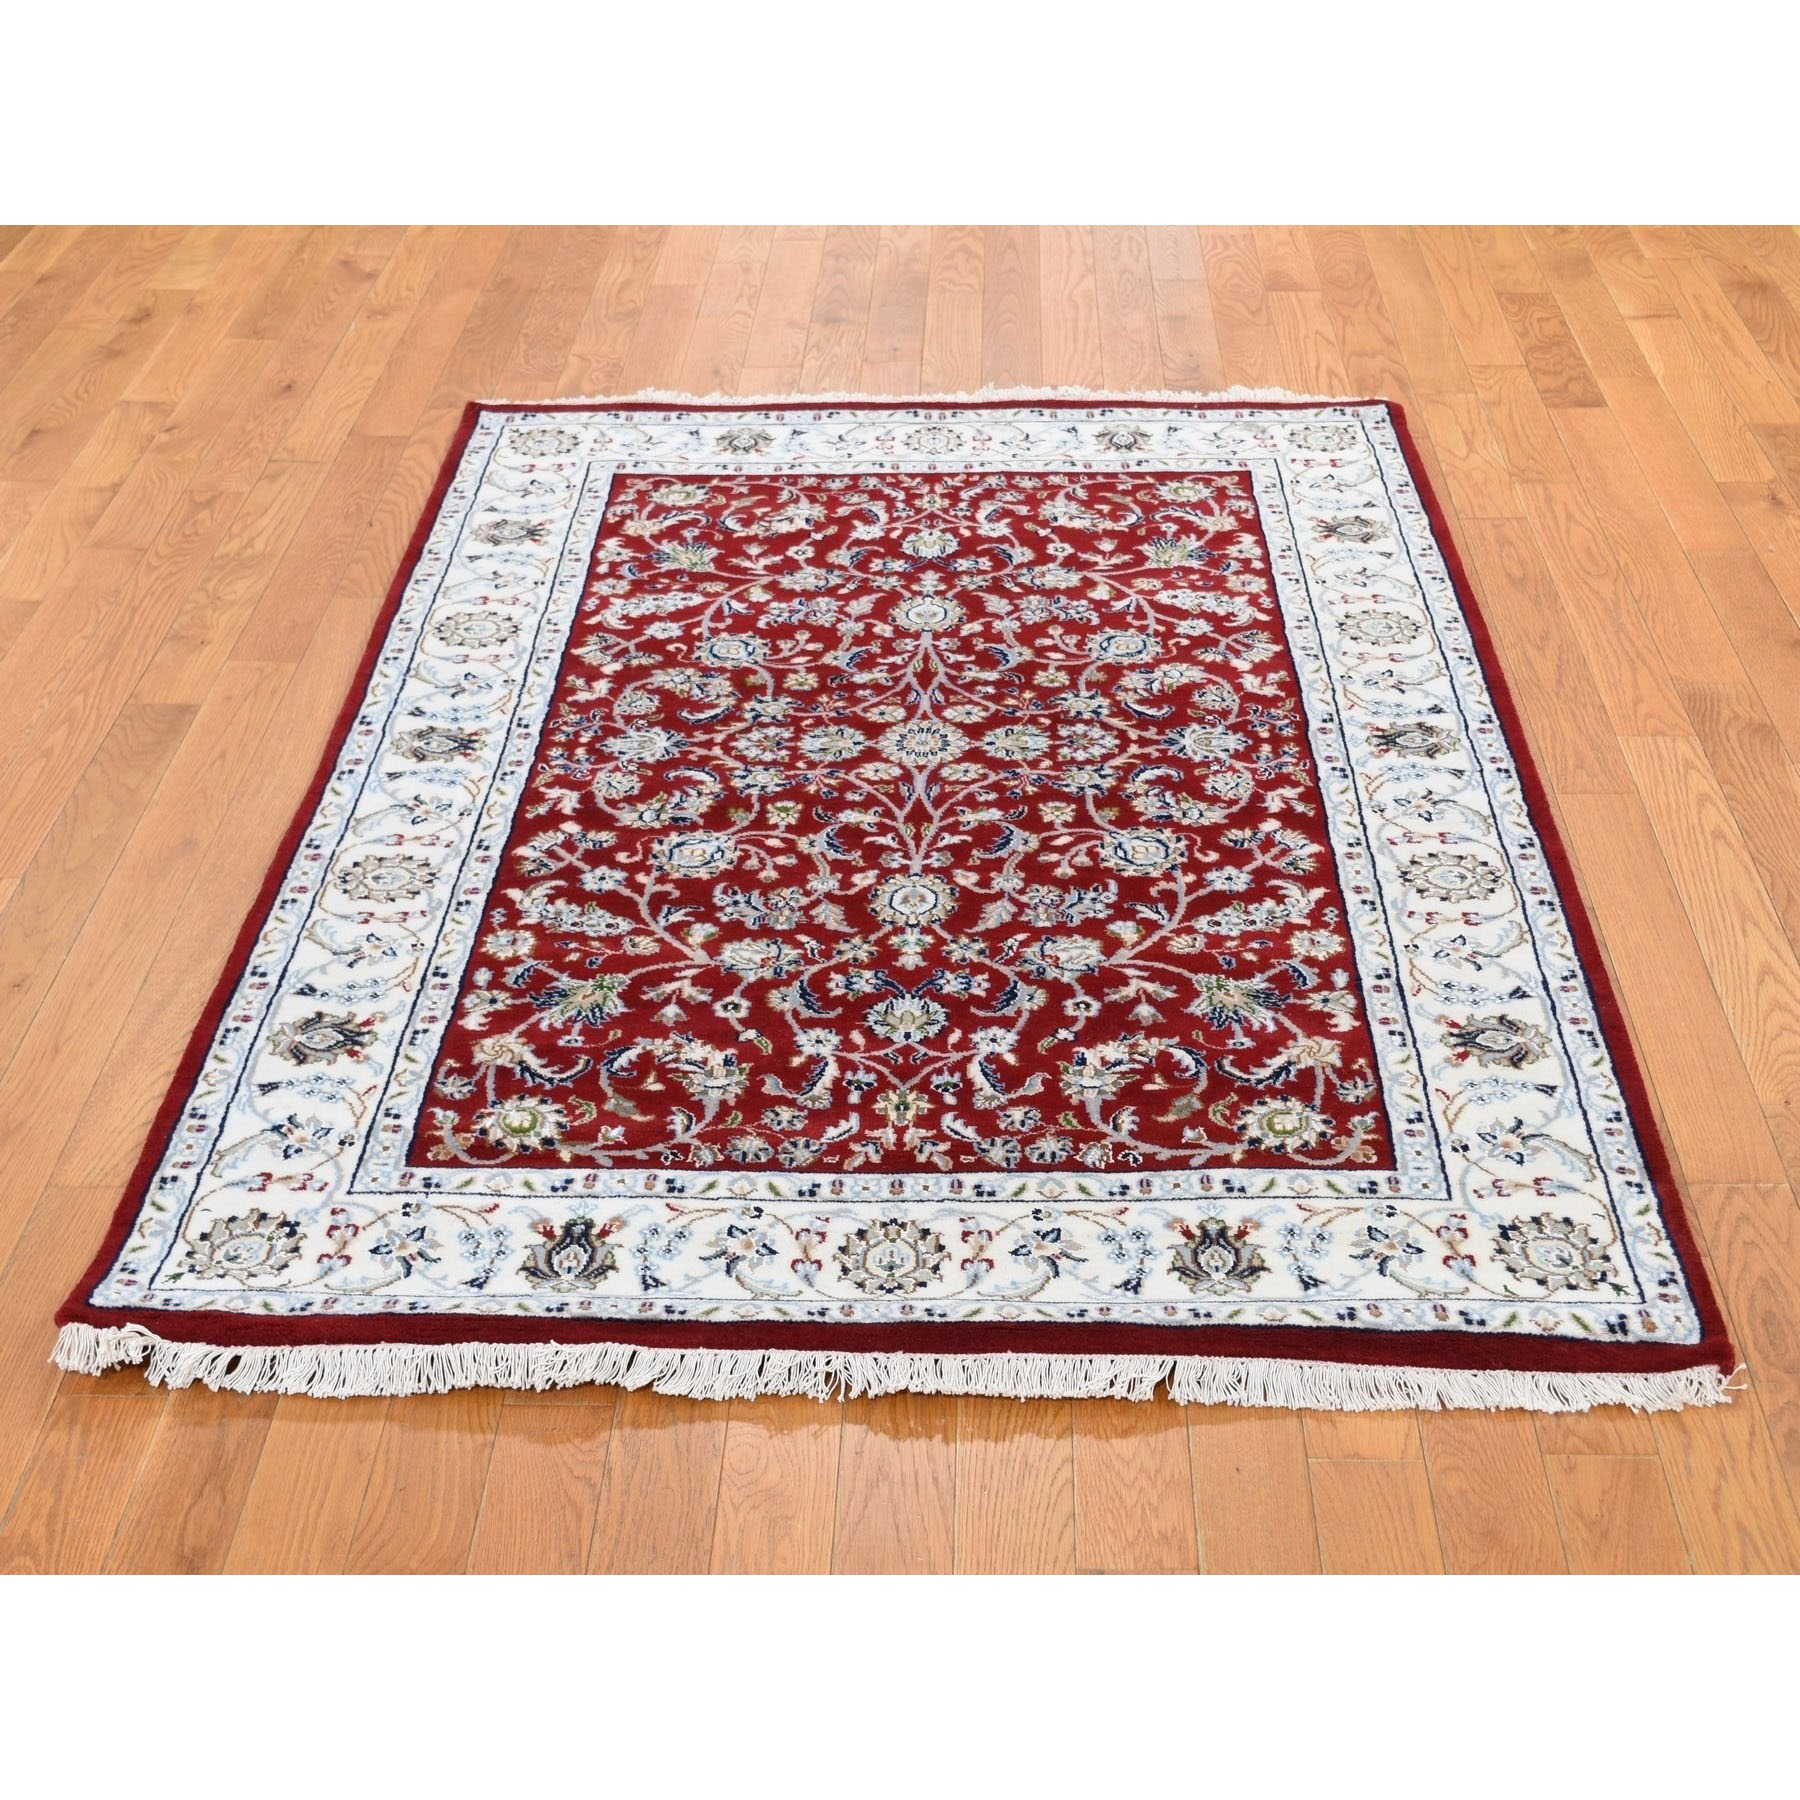 3-2 x5-3  Red Nain Wool And Silk All Over Design 250 KPSI Hand Knotted Oriental Rug